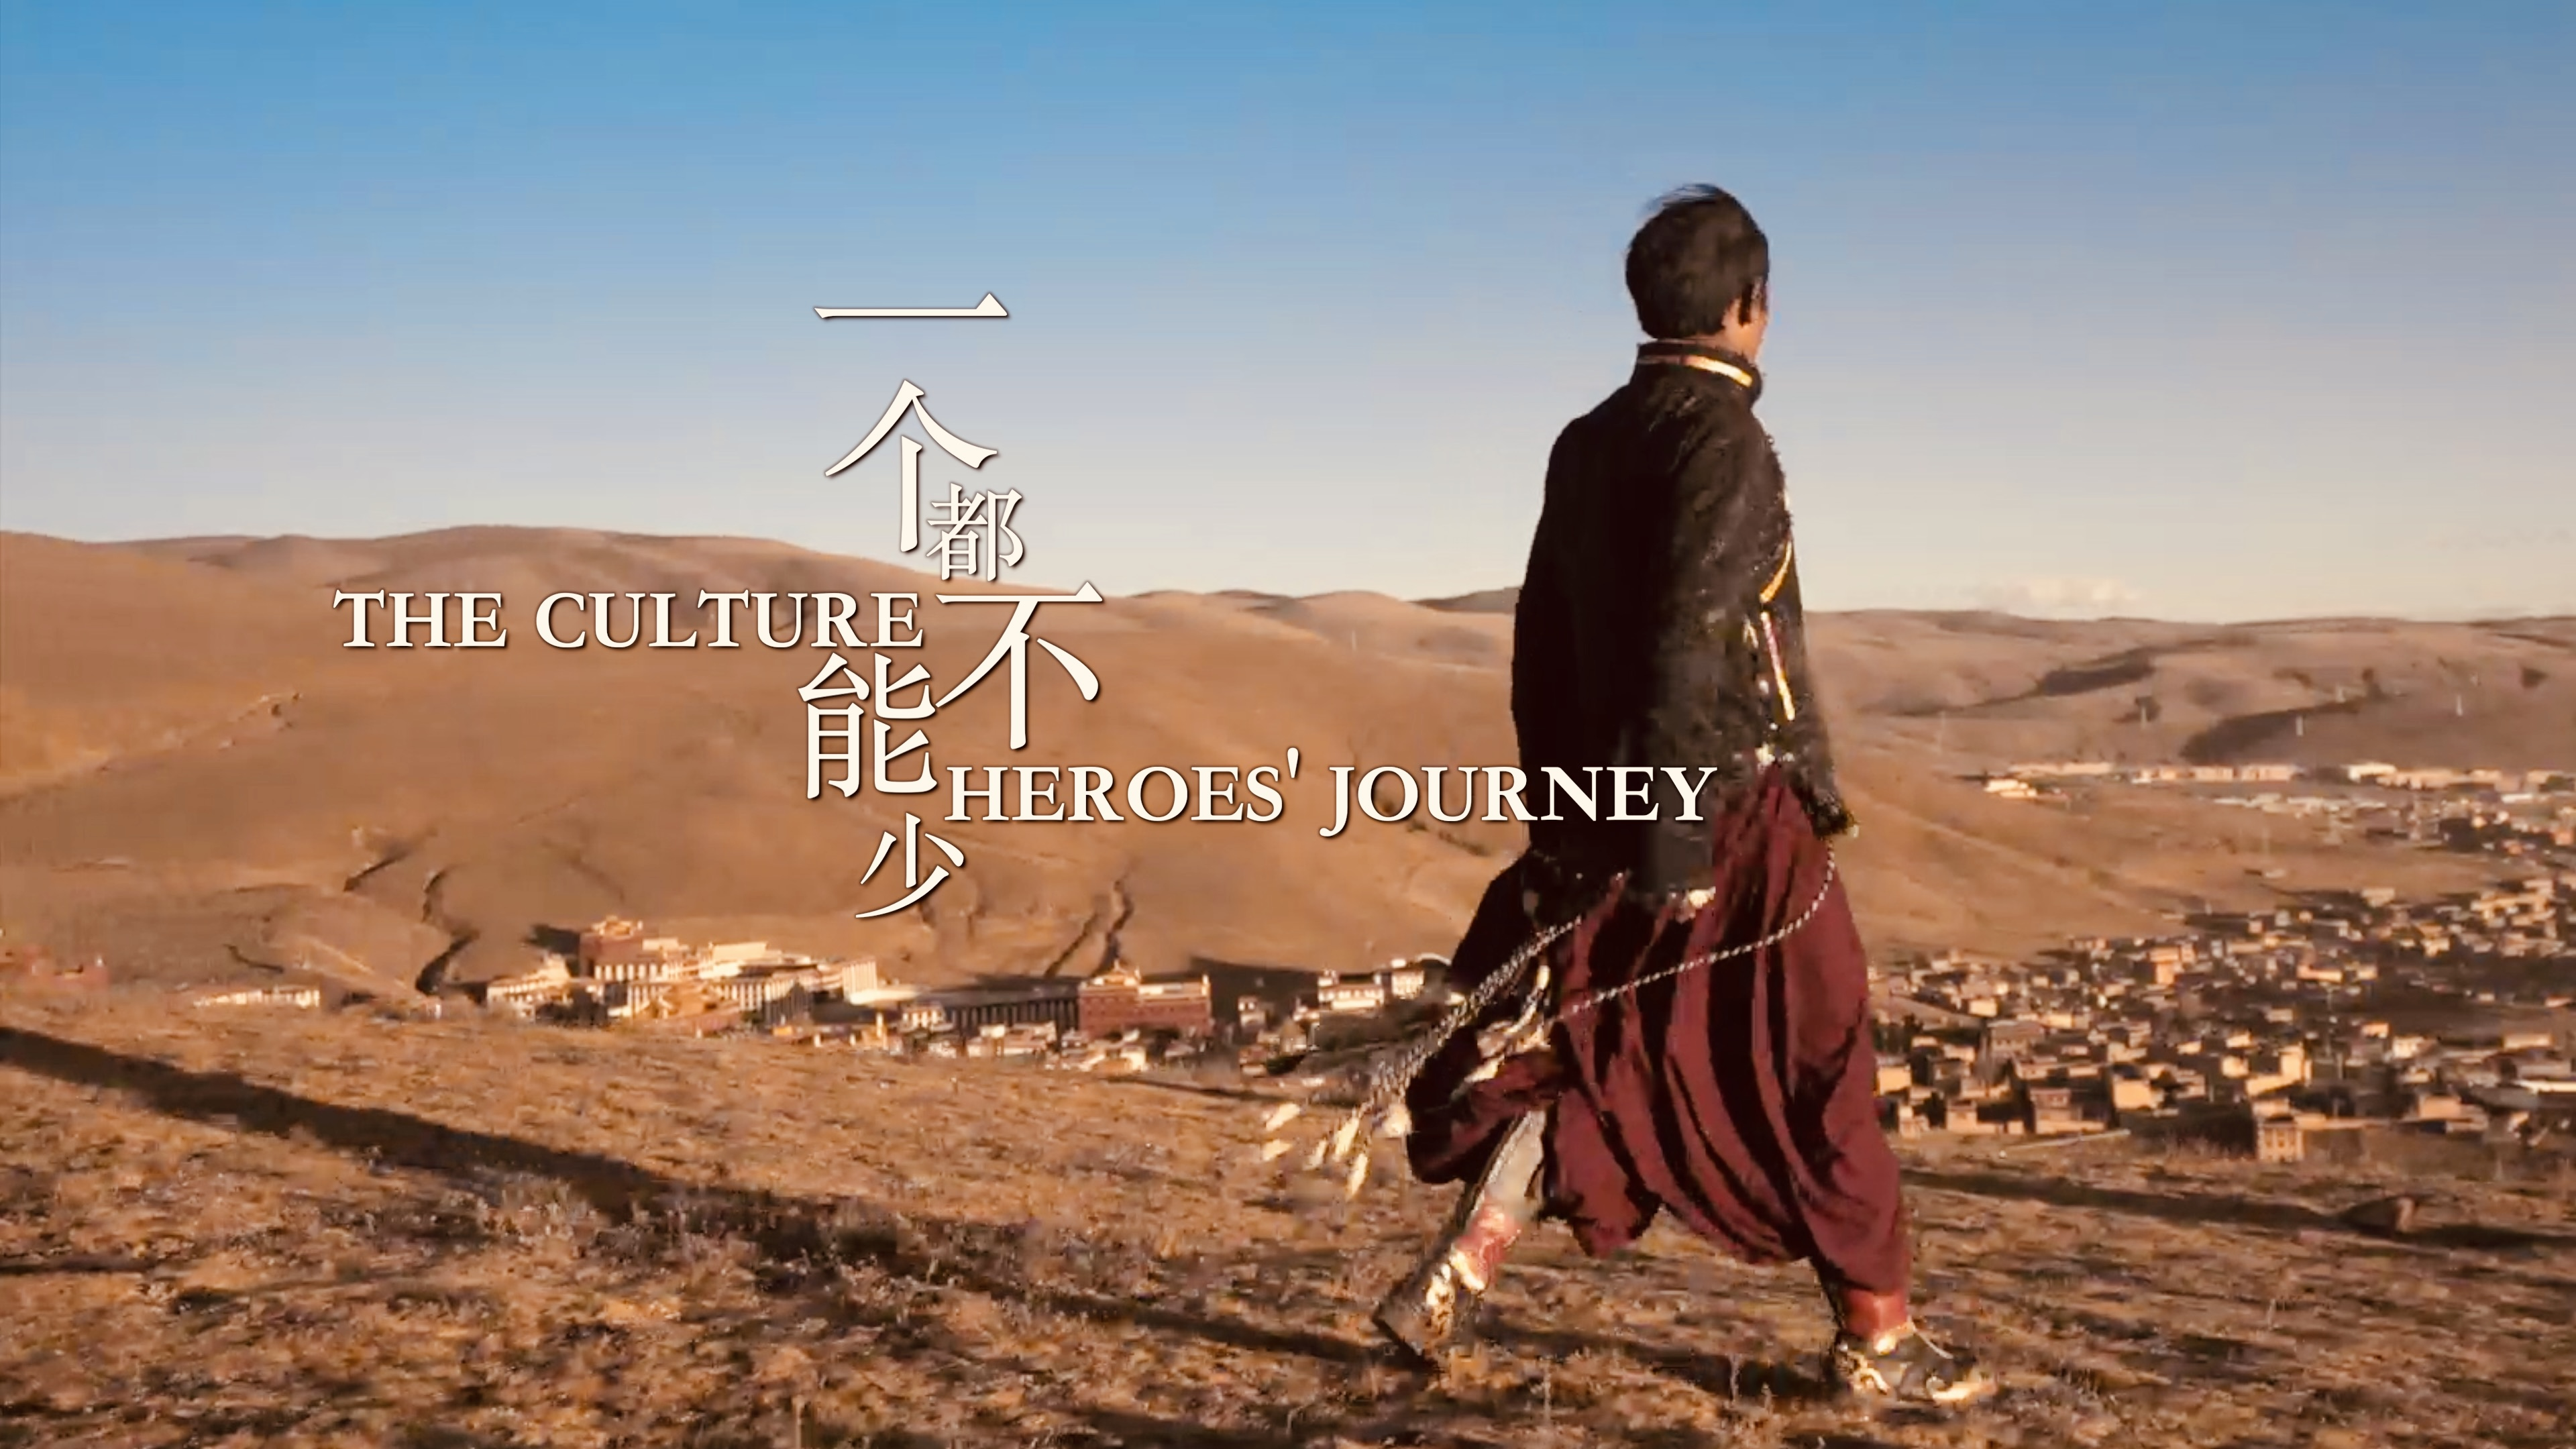 The culture heroes' journey